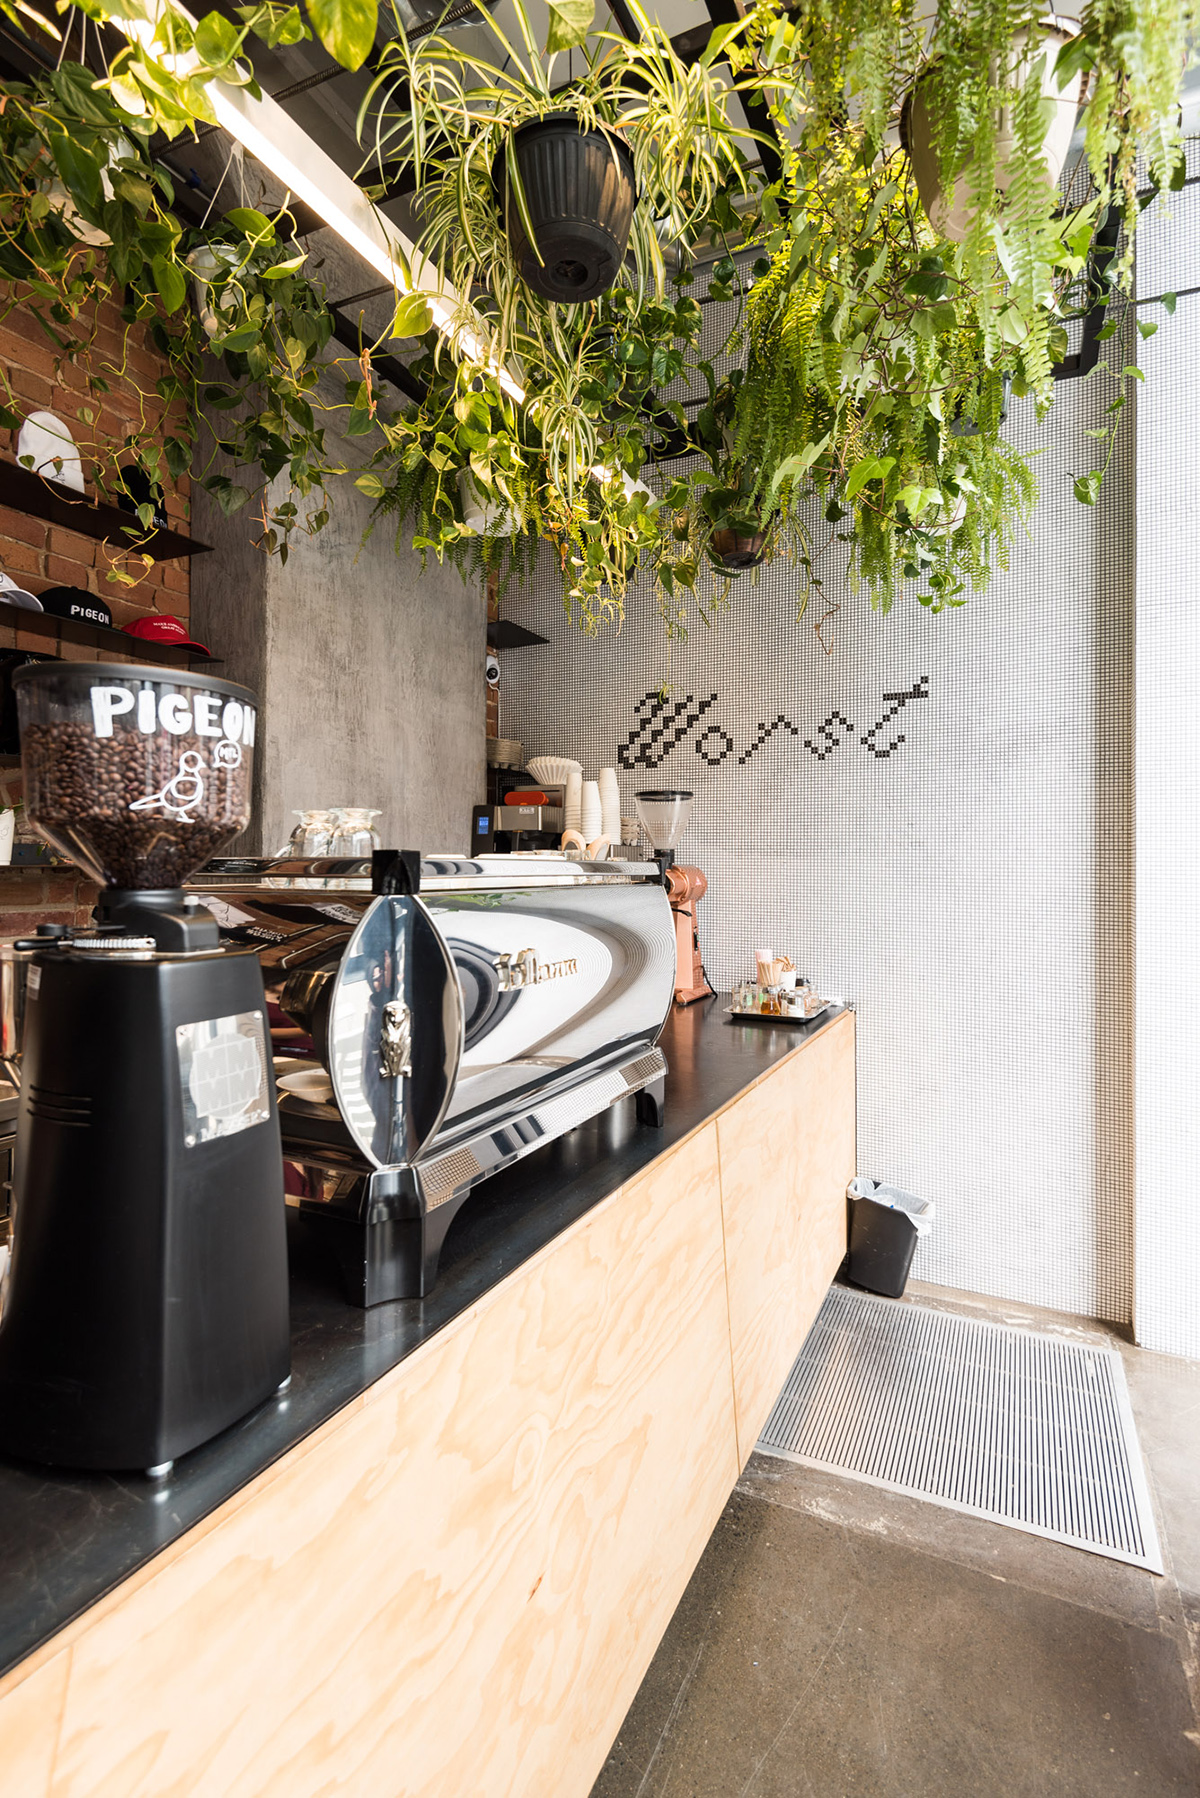 Montreal - Coffee - Pigeon Espresso © Will Travel for Food